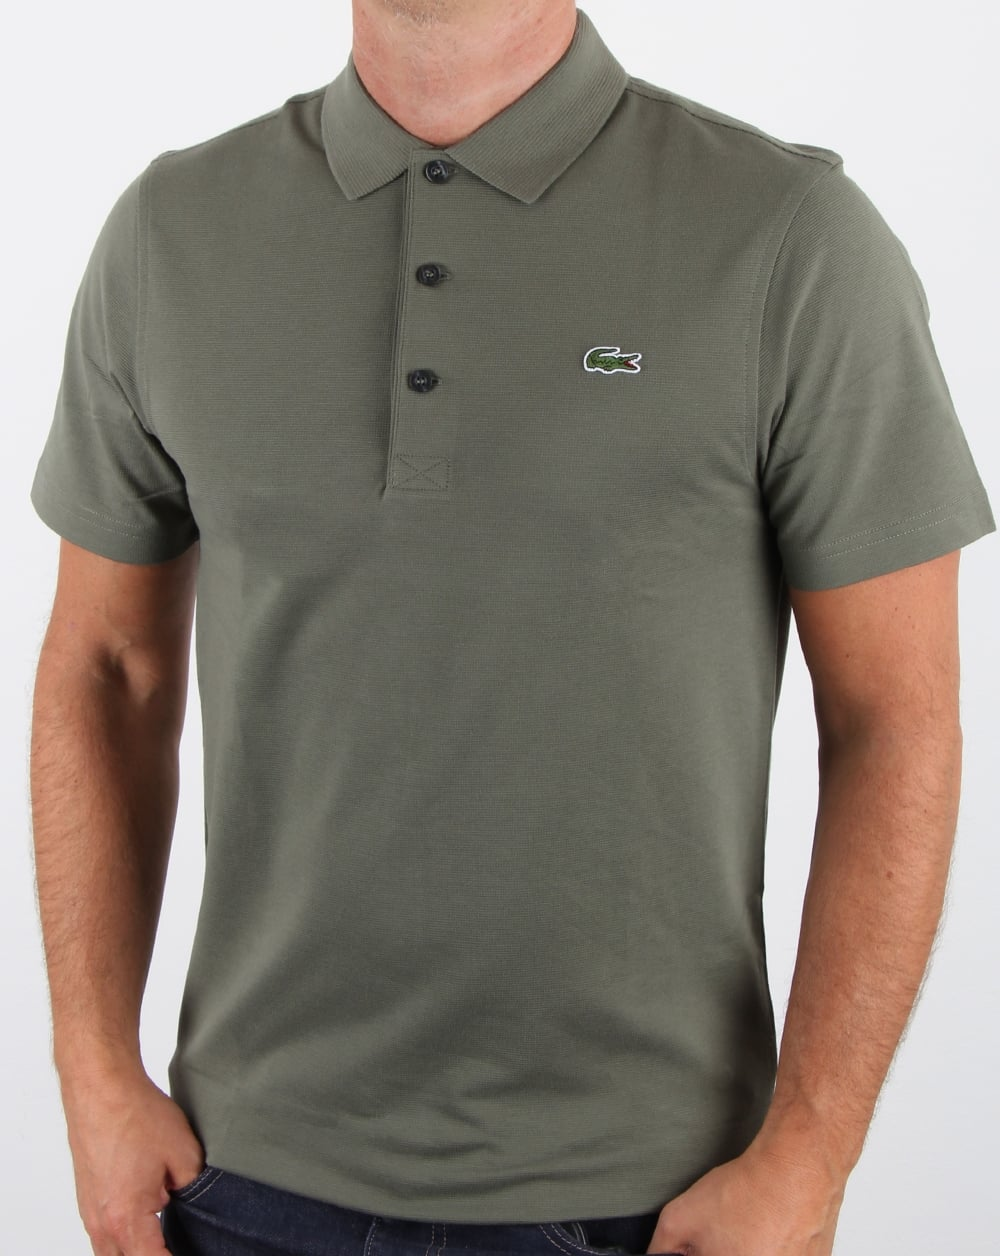 53e1885ef8 Lacoste Ultra-lightweight Knit Polo Shirt Army,men,cotton,top